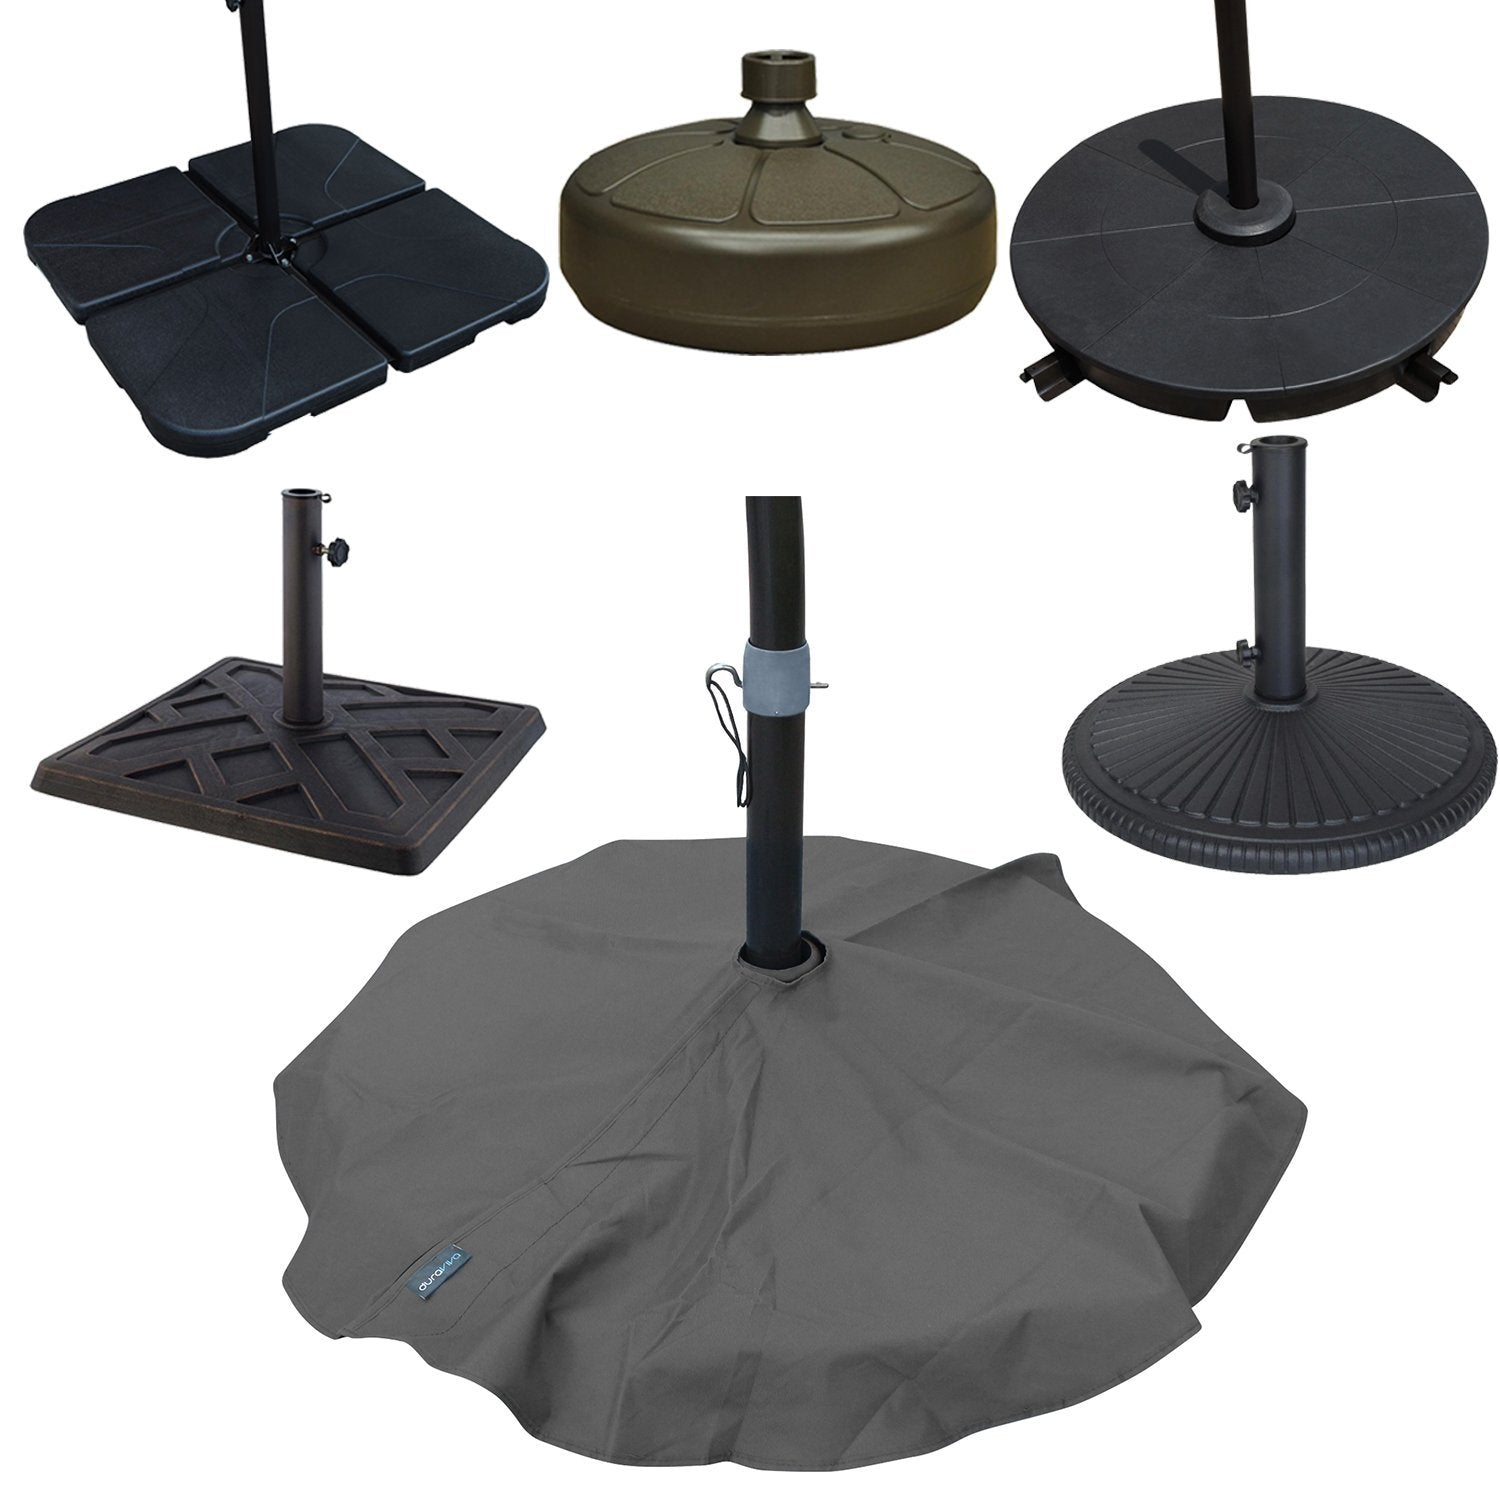 Duraviva Outdoor Patio Umbrella Base Stand Weatherproof Layover Cover u2013 Waterproof Easy-to-Use Velcro Enclosure Design - Fits Bases up to 36u201d in Diameter  sc 1 st  Gazily & Duraviva Outdoor Patio Umbrella Base Stand Weatherproof Layover ...